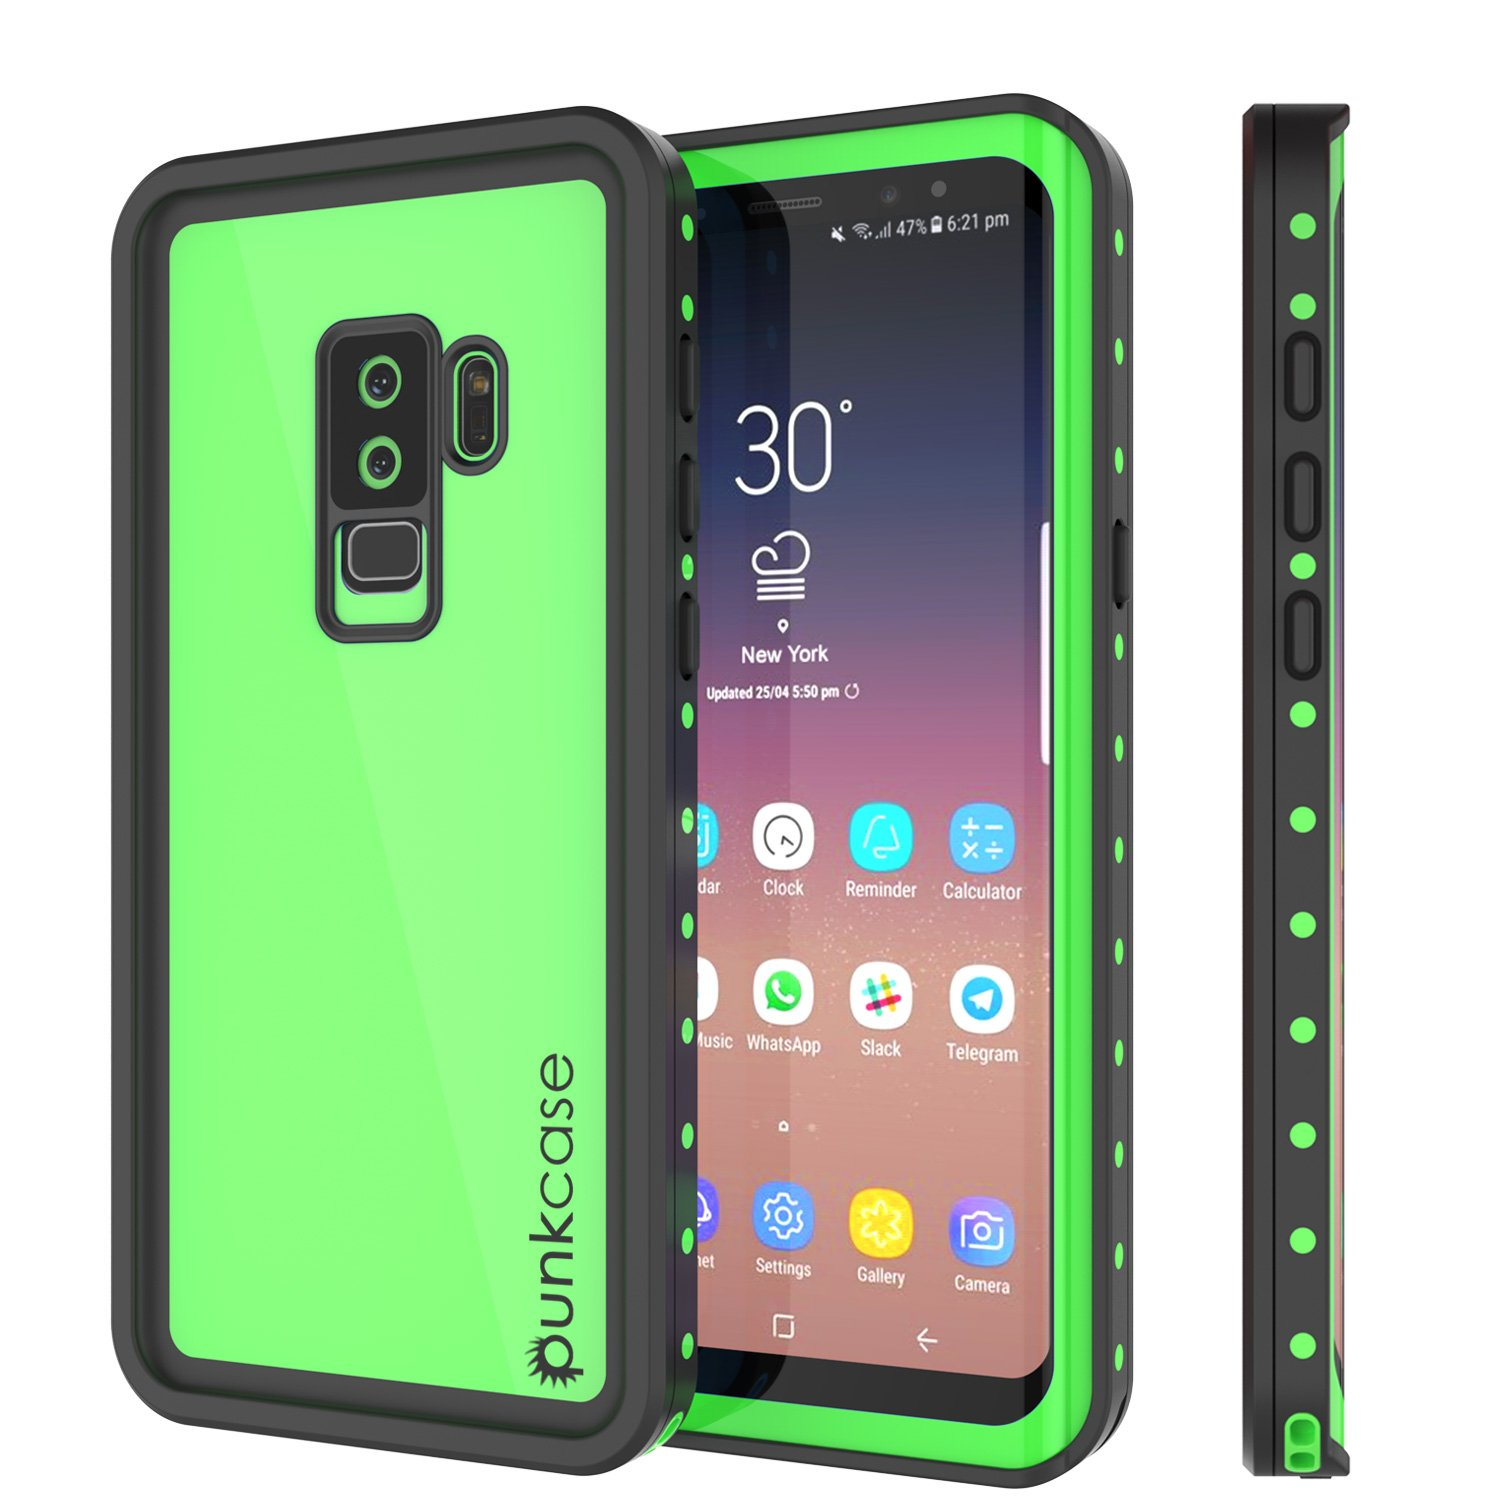 Galaxy S9 Plus Waterproof Case, Punkcase [StudStar Series] [Slim Fit] [IP68 Certified] [Shockproof] [Dirtproof] [Snowproof] Armor Cover for Samsung Galaxy S9+ [Light Green]